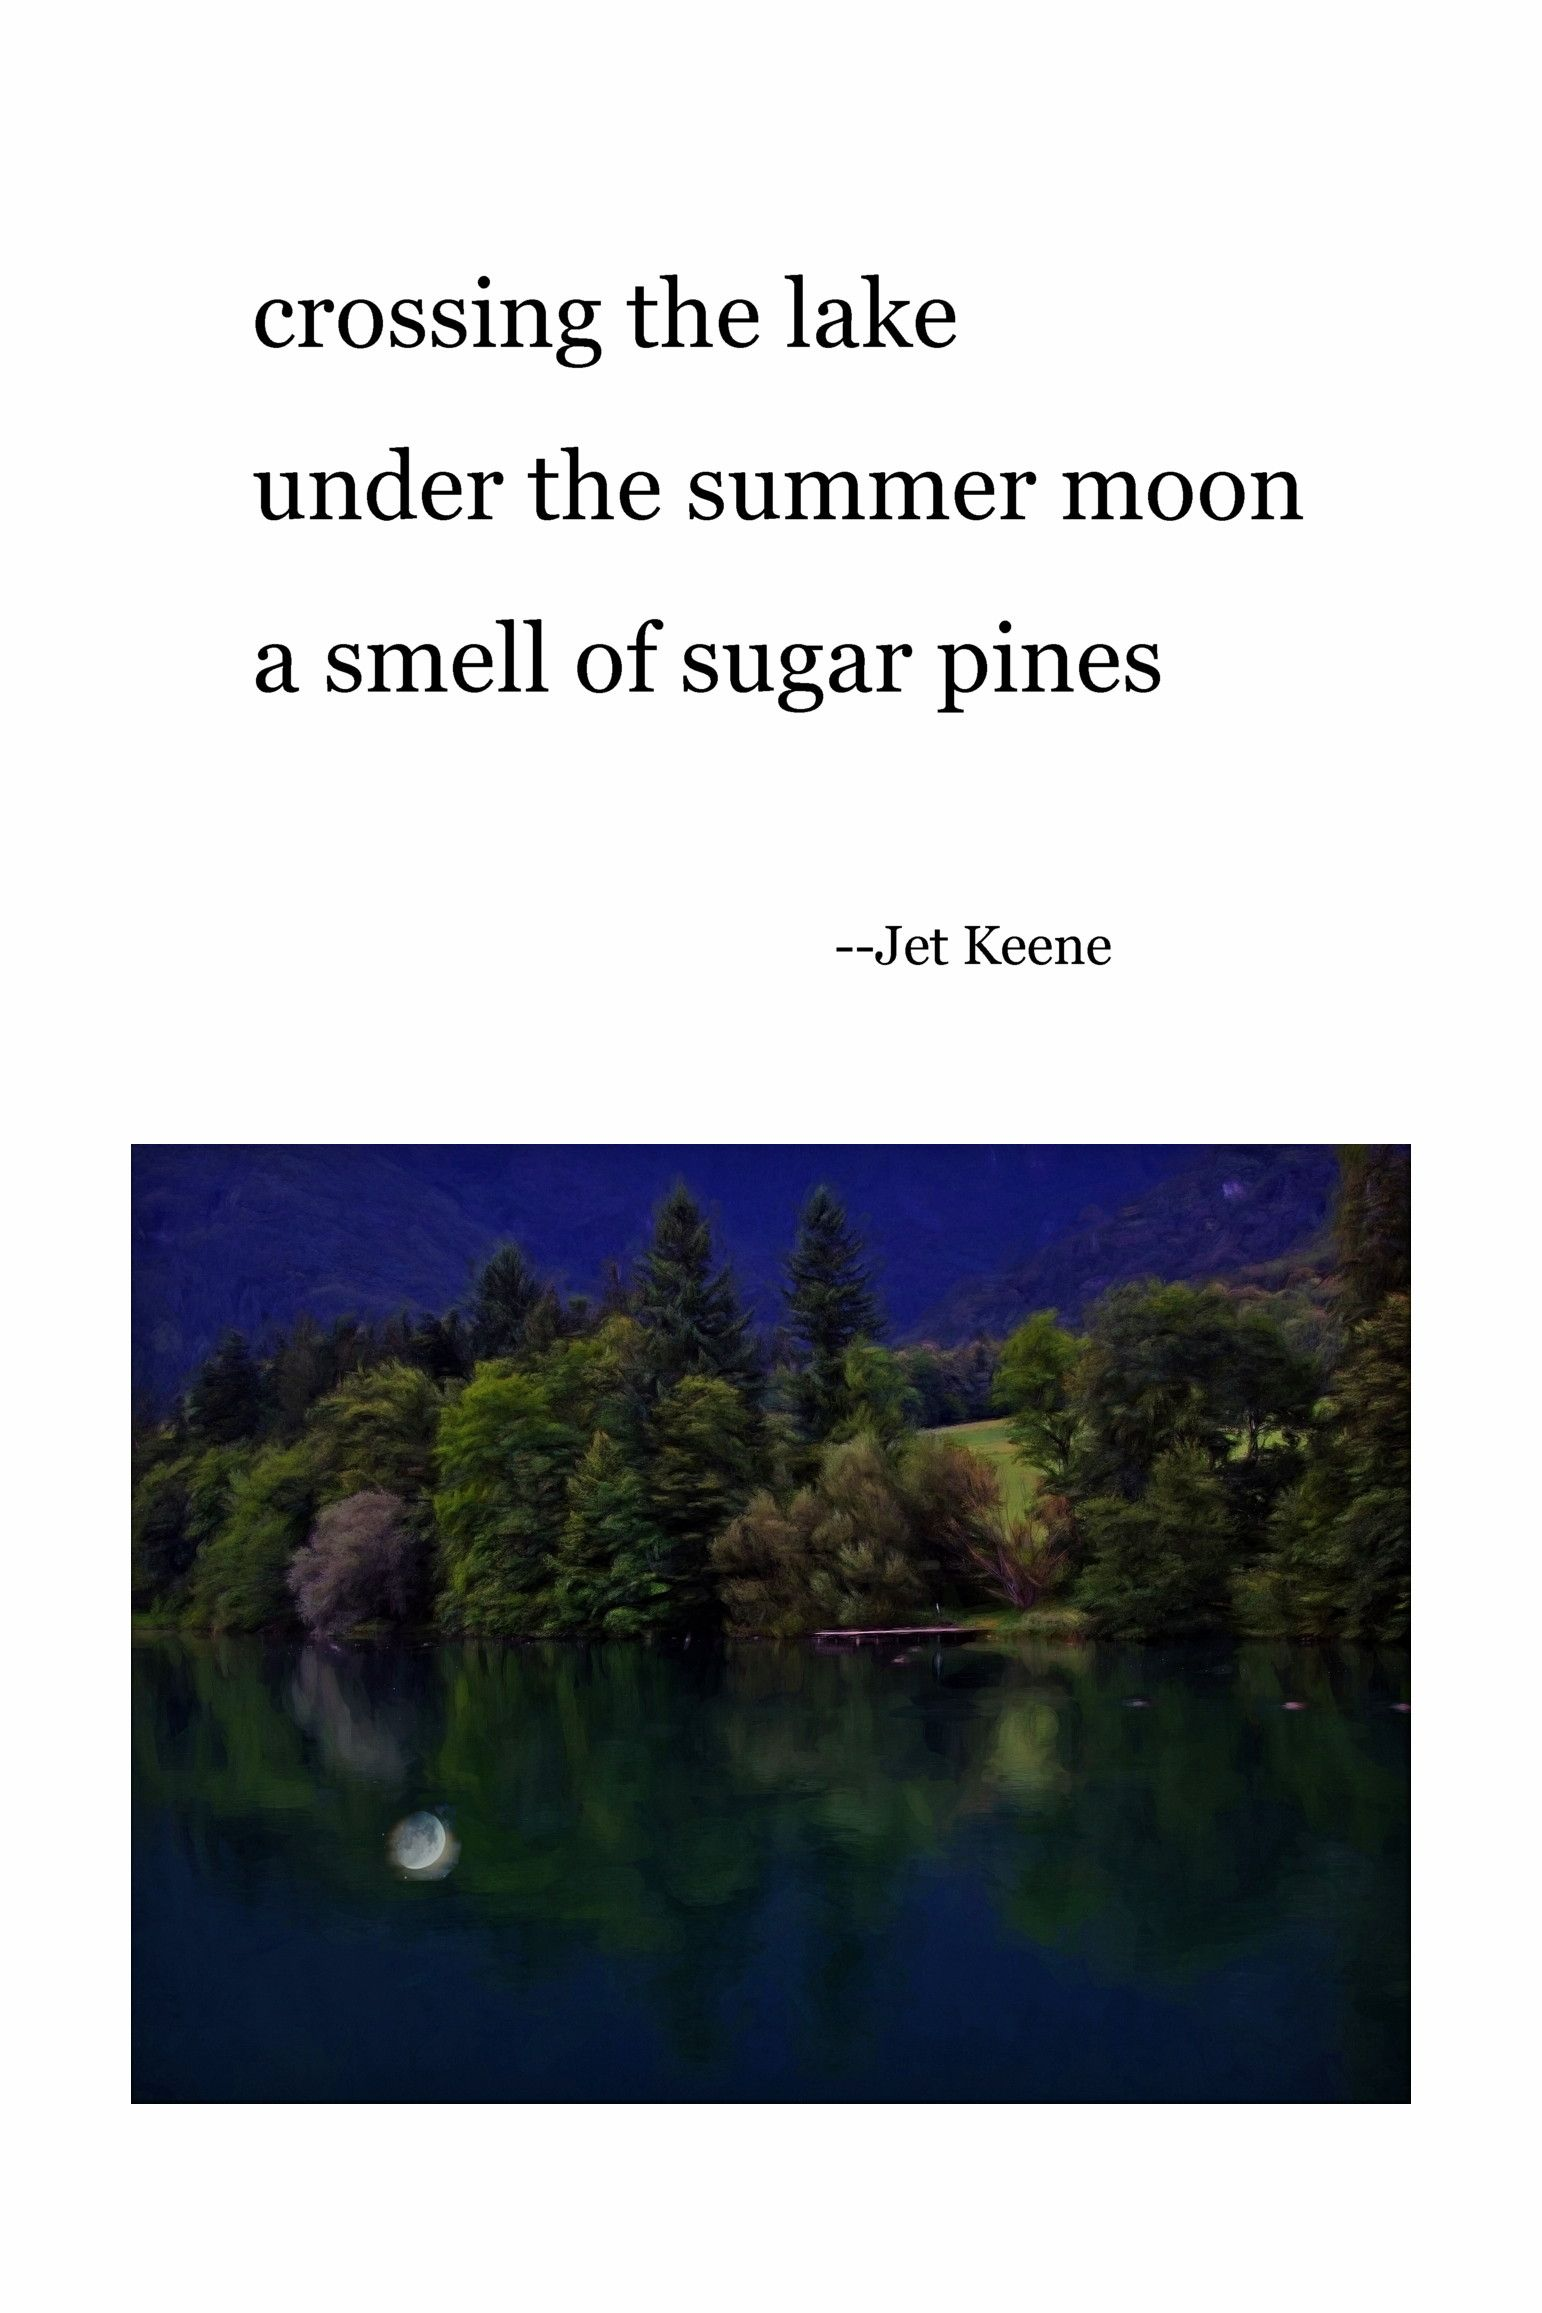 Haiku By Jet Keene Poetry Haiku